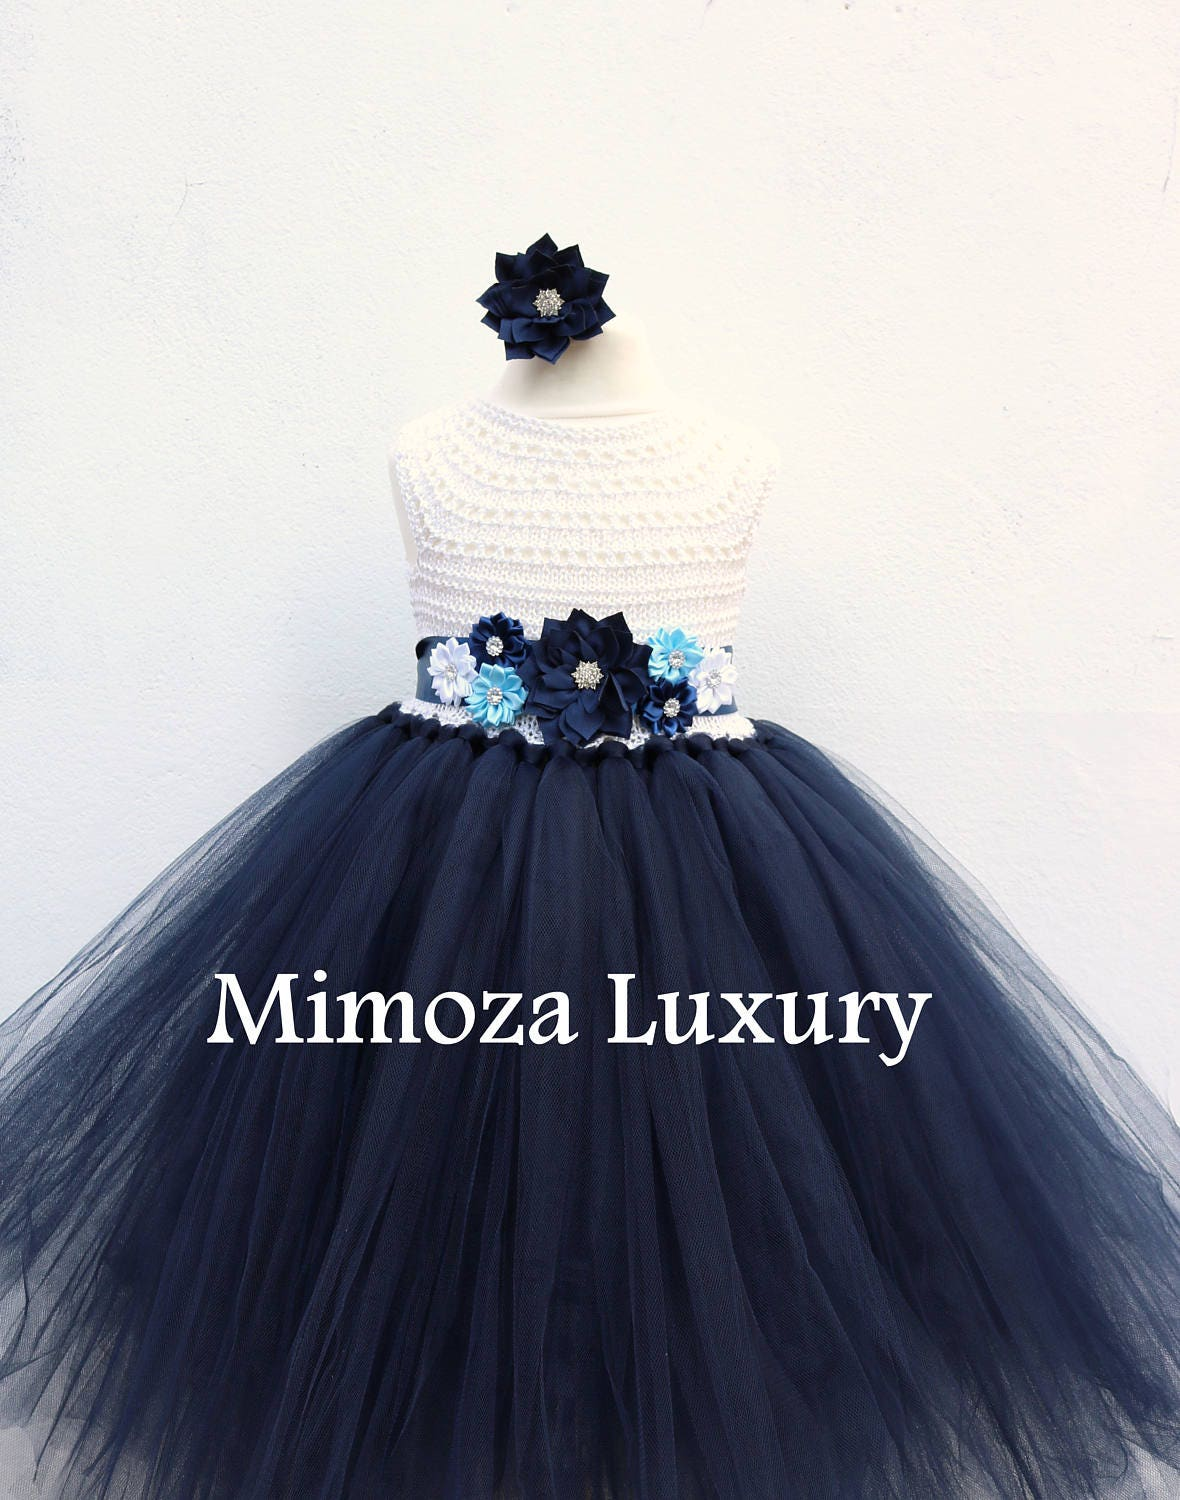 Navy white flower girl dress white and navy tutu dress navy blue navy white flower girl dress white and navy tutu dress navy blue white bridesmaid dress navy blue princess dress white navy wedding izmirmasajfo Image collections